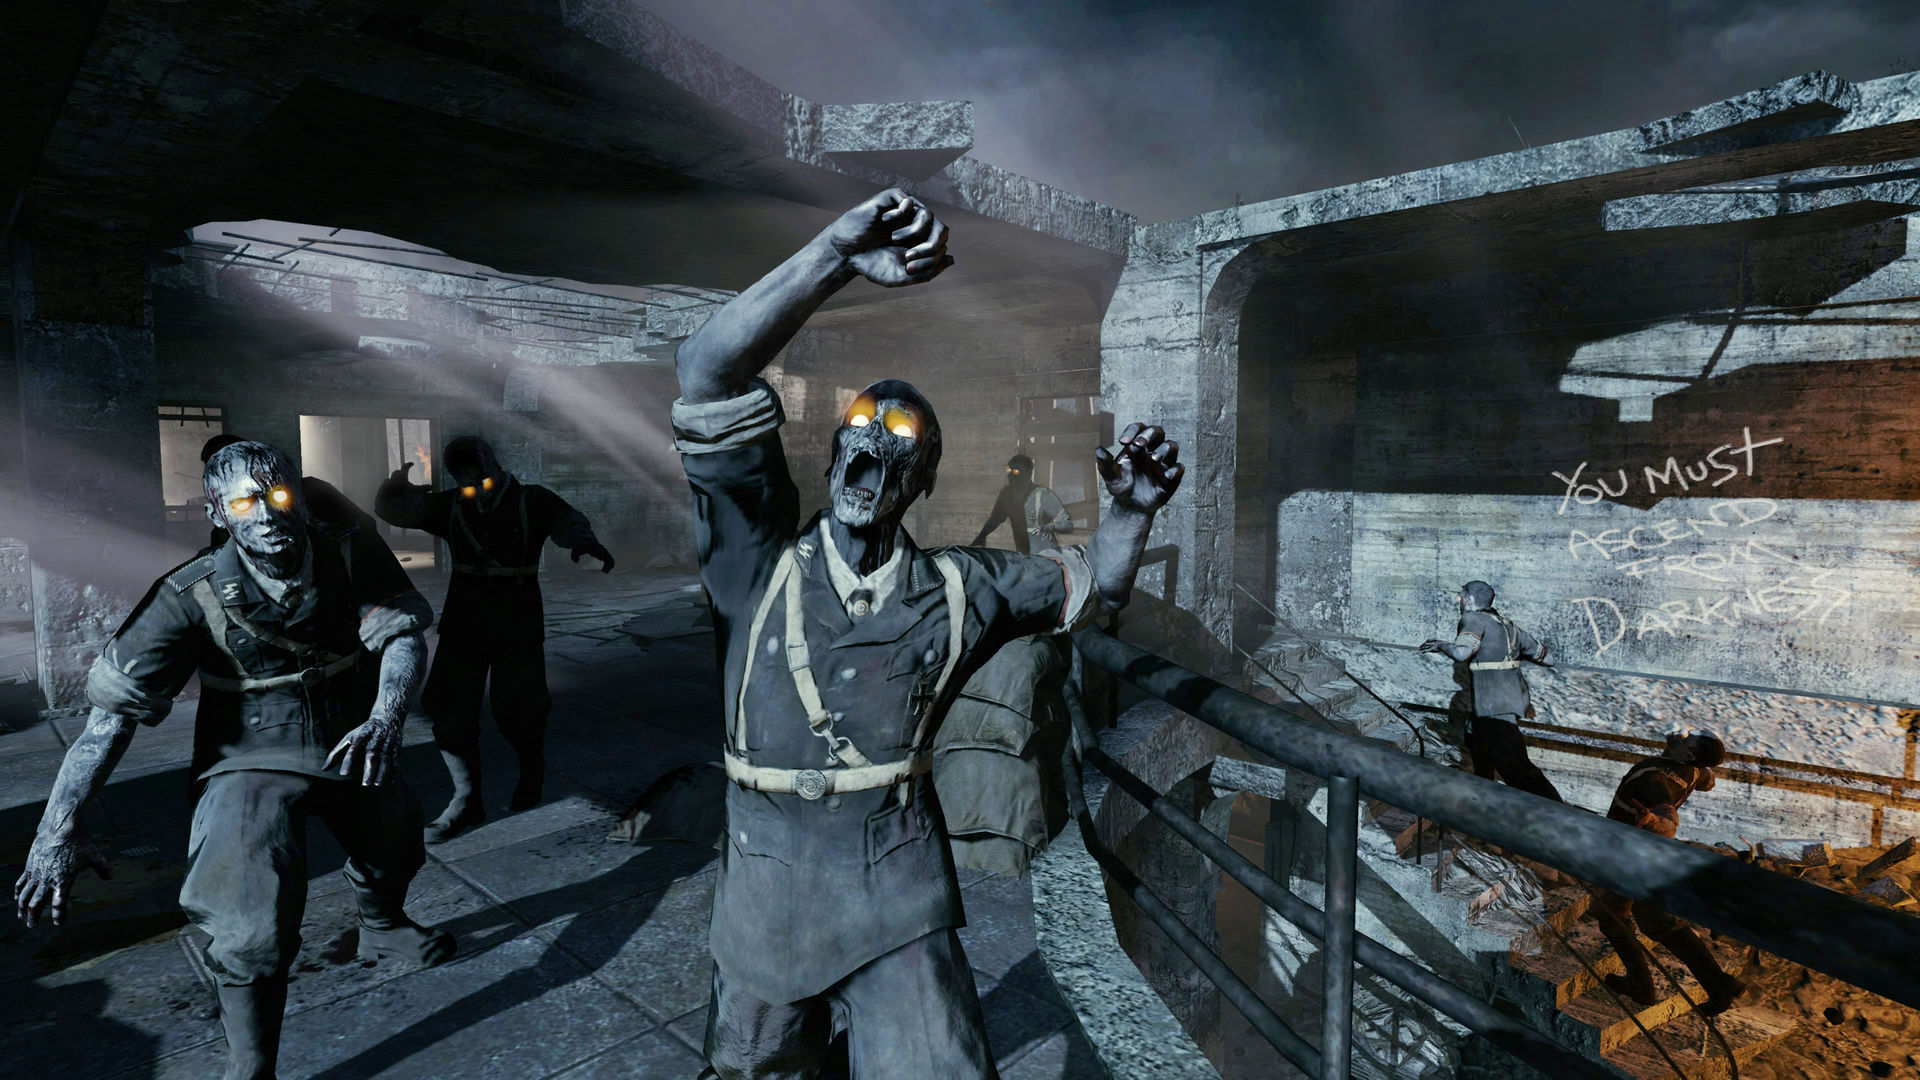 Call of Duty: Black Ops Rezurrection Content Pack ... Call Of Duty Black Ops Map Packs on black ops 2 map packs, call of duty black ops 3 map packs, call of duty world at war map packs, call of duty mw3 map packs,